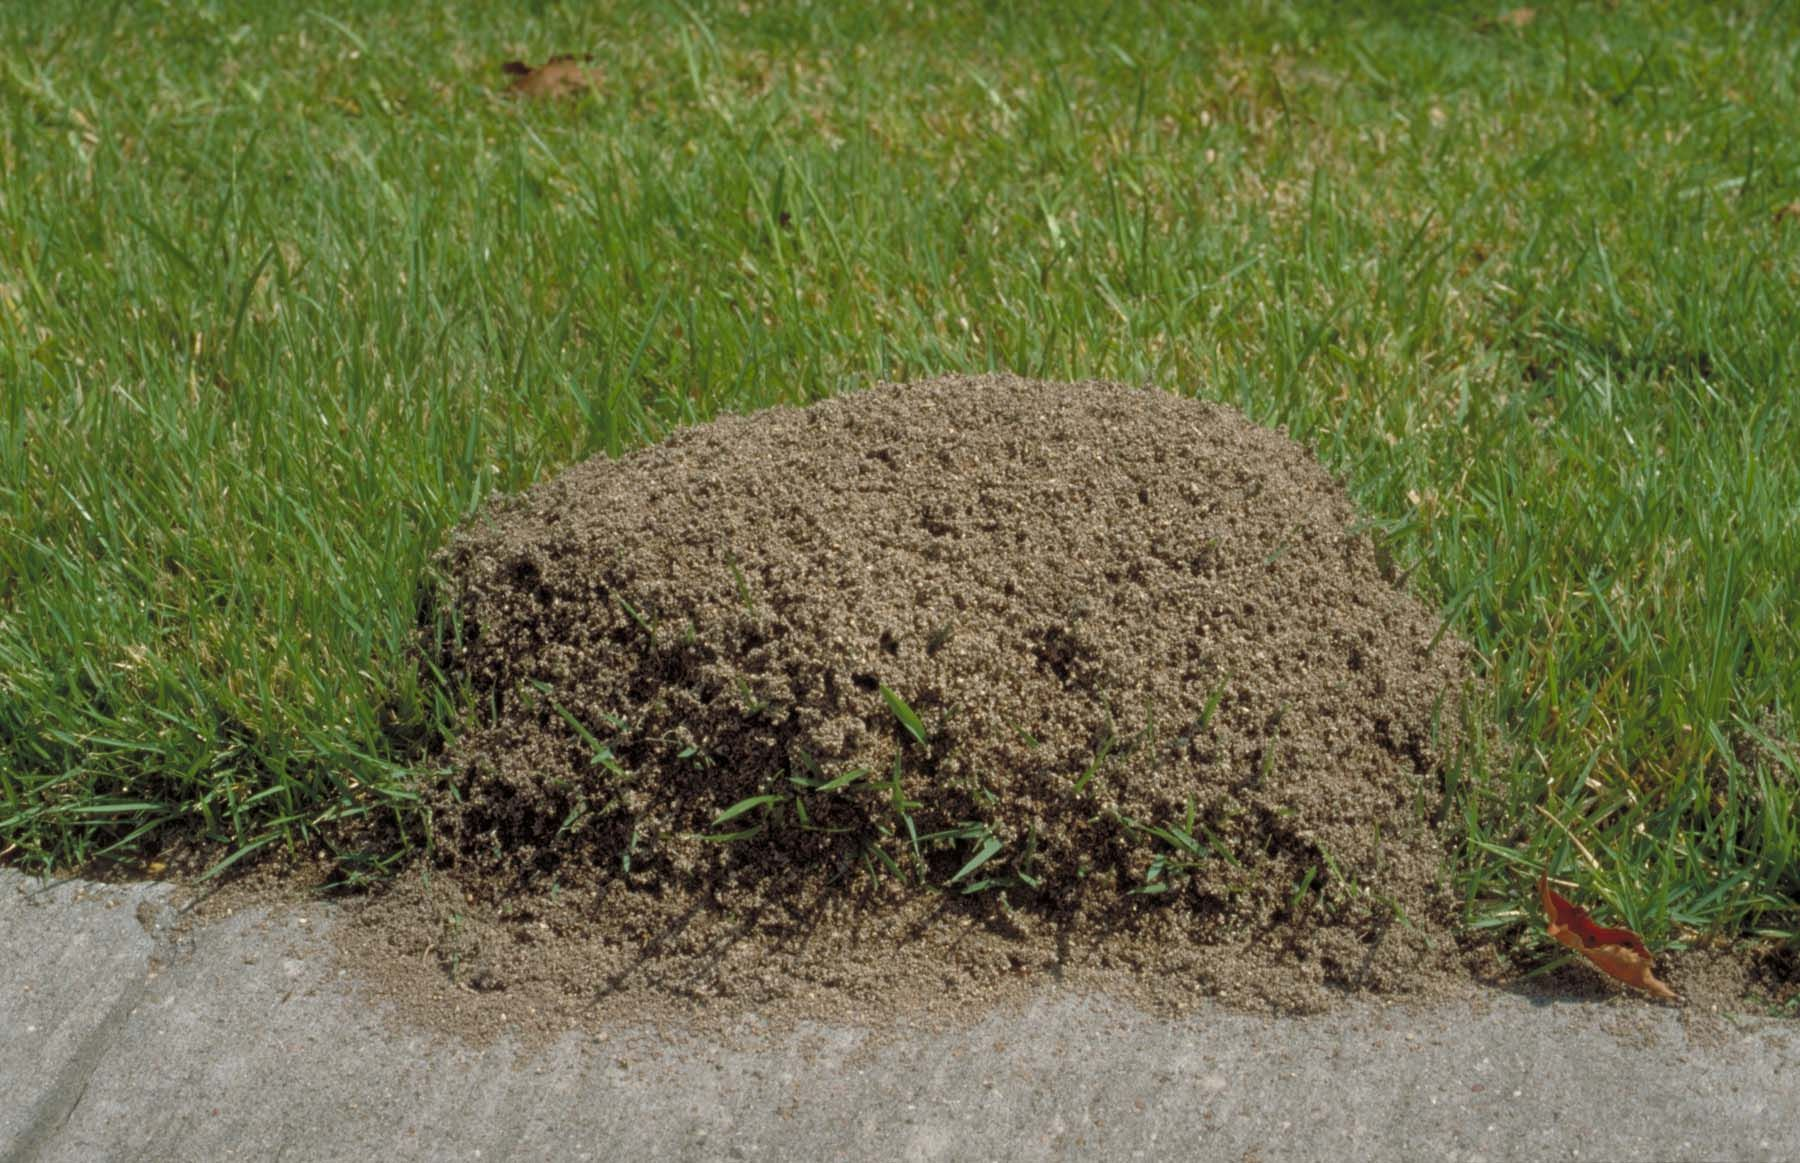 fire ants reappear after recent rains agrilife todayagrilife today